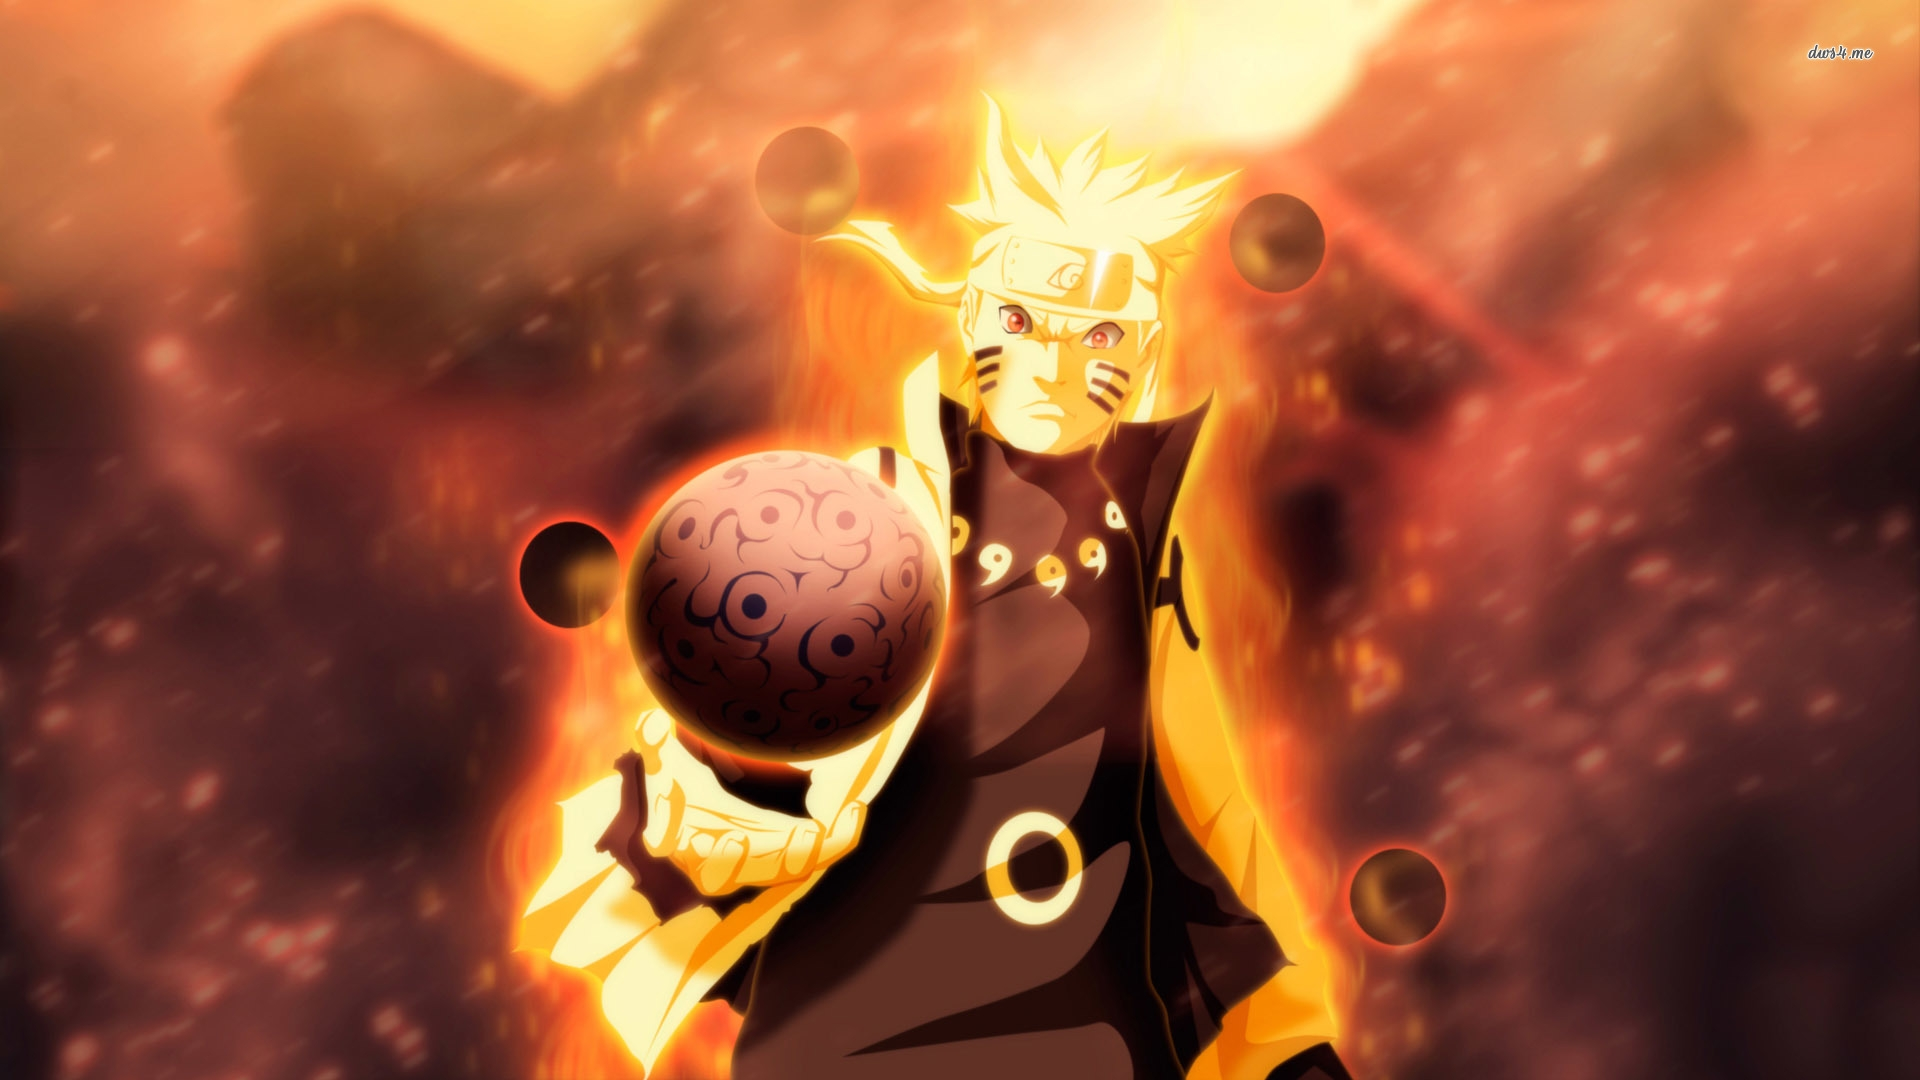 Live Naruto Wallpapers 22 Wallpapers Adorable Wallpapers